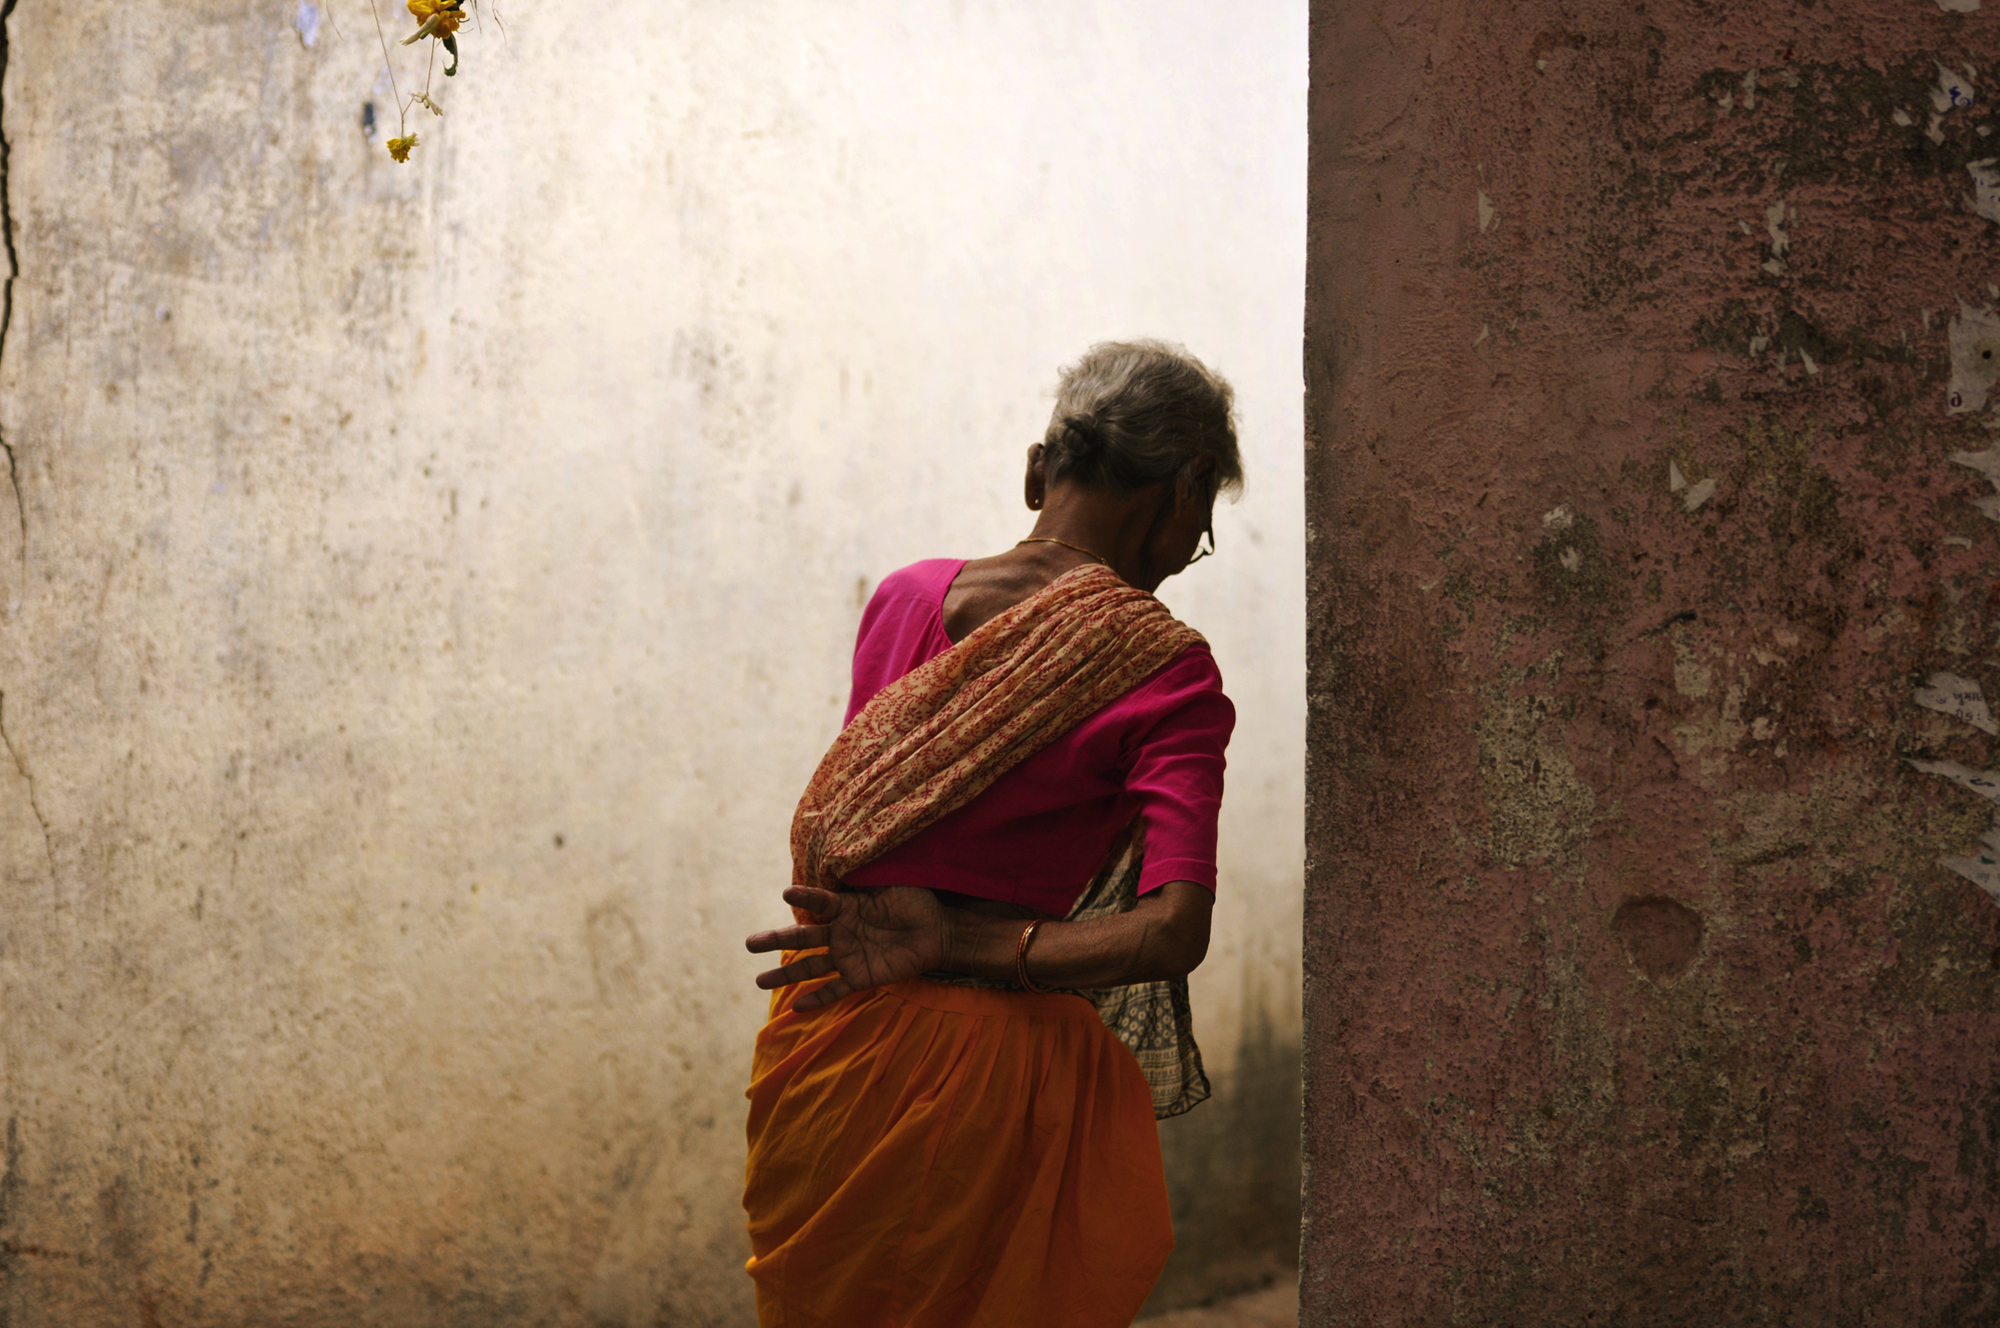 Photo by Kristian Bertel - An alley or alleyway is a narrow lane, path or passageway, often reserved for pedestrians, which usually runs between, behind or within buildings in the older parts of towns and cities. Here the photographer captured his participating image for the contest of a woman passing through an alley in Mumbai, India.